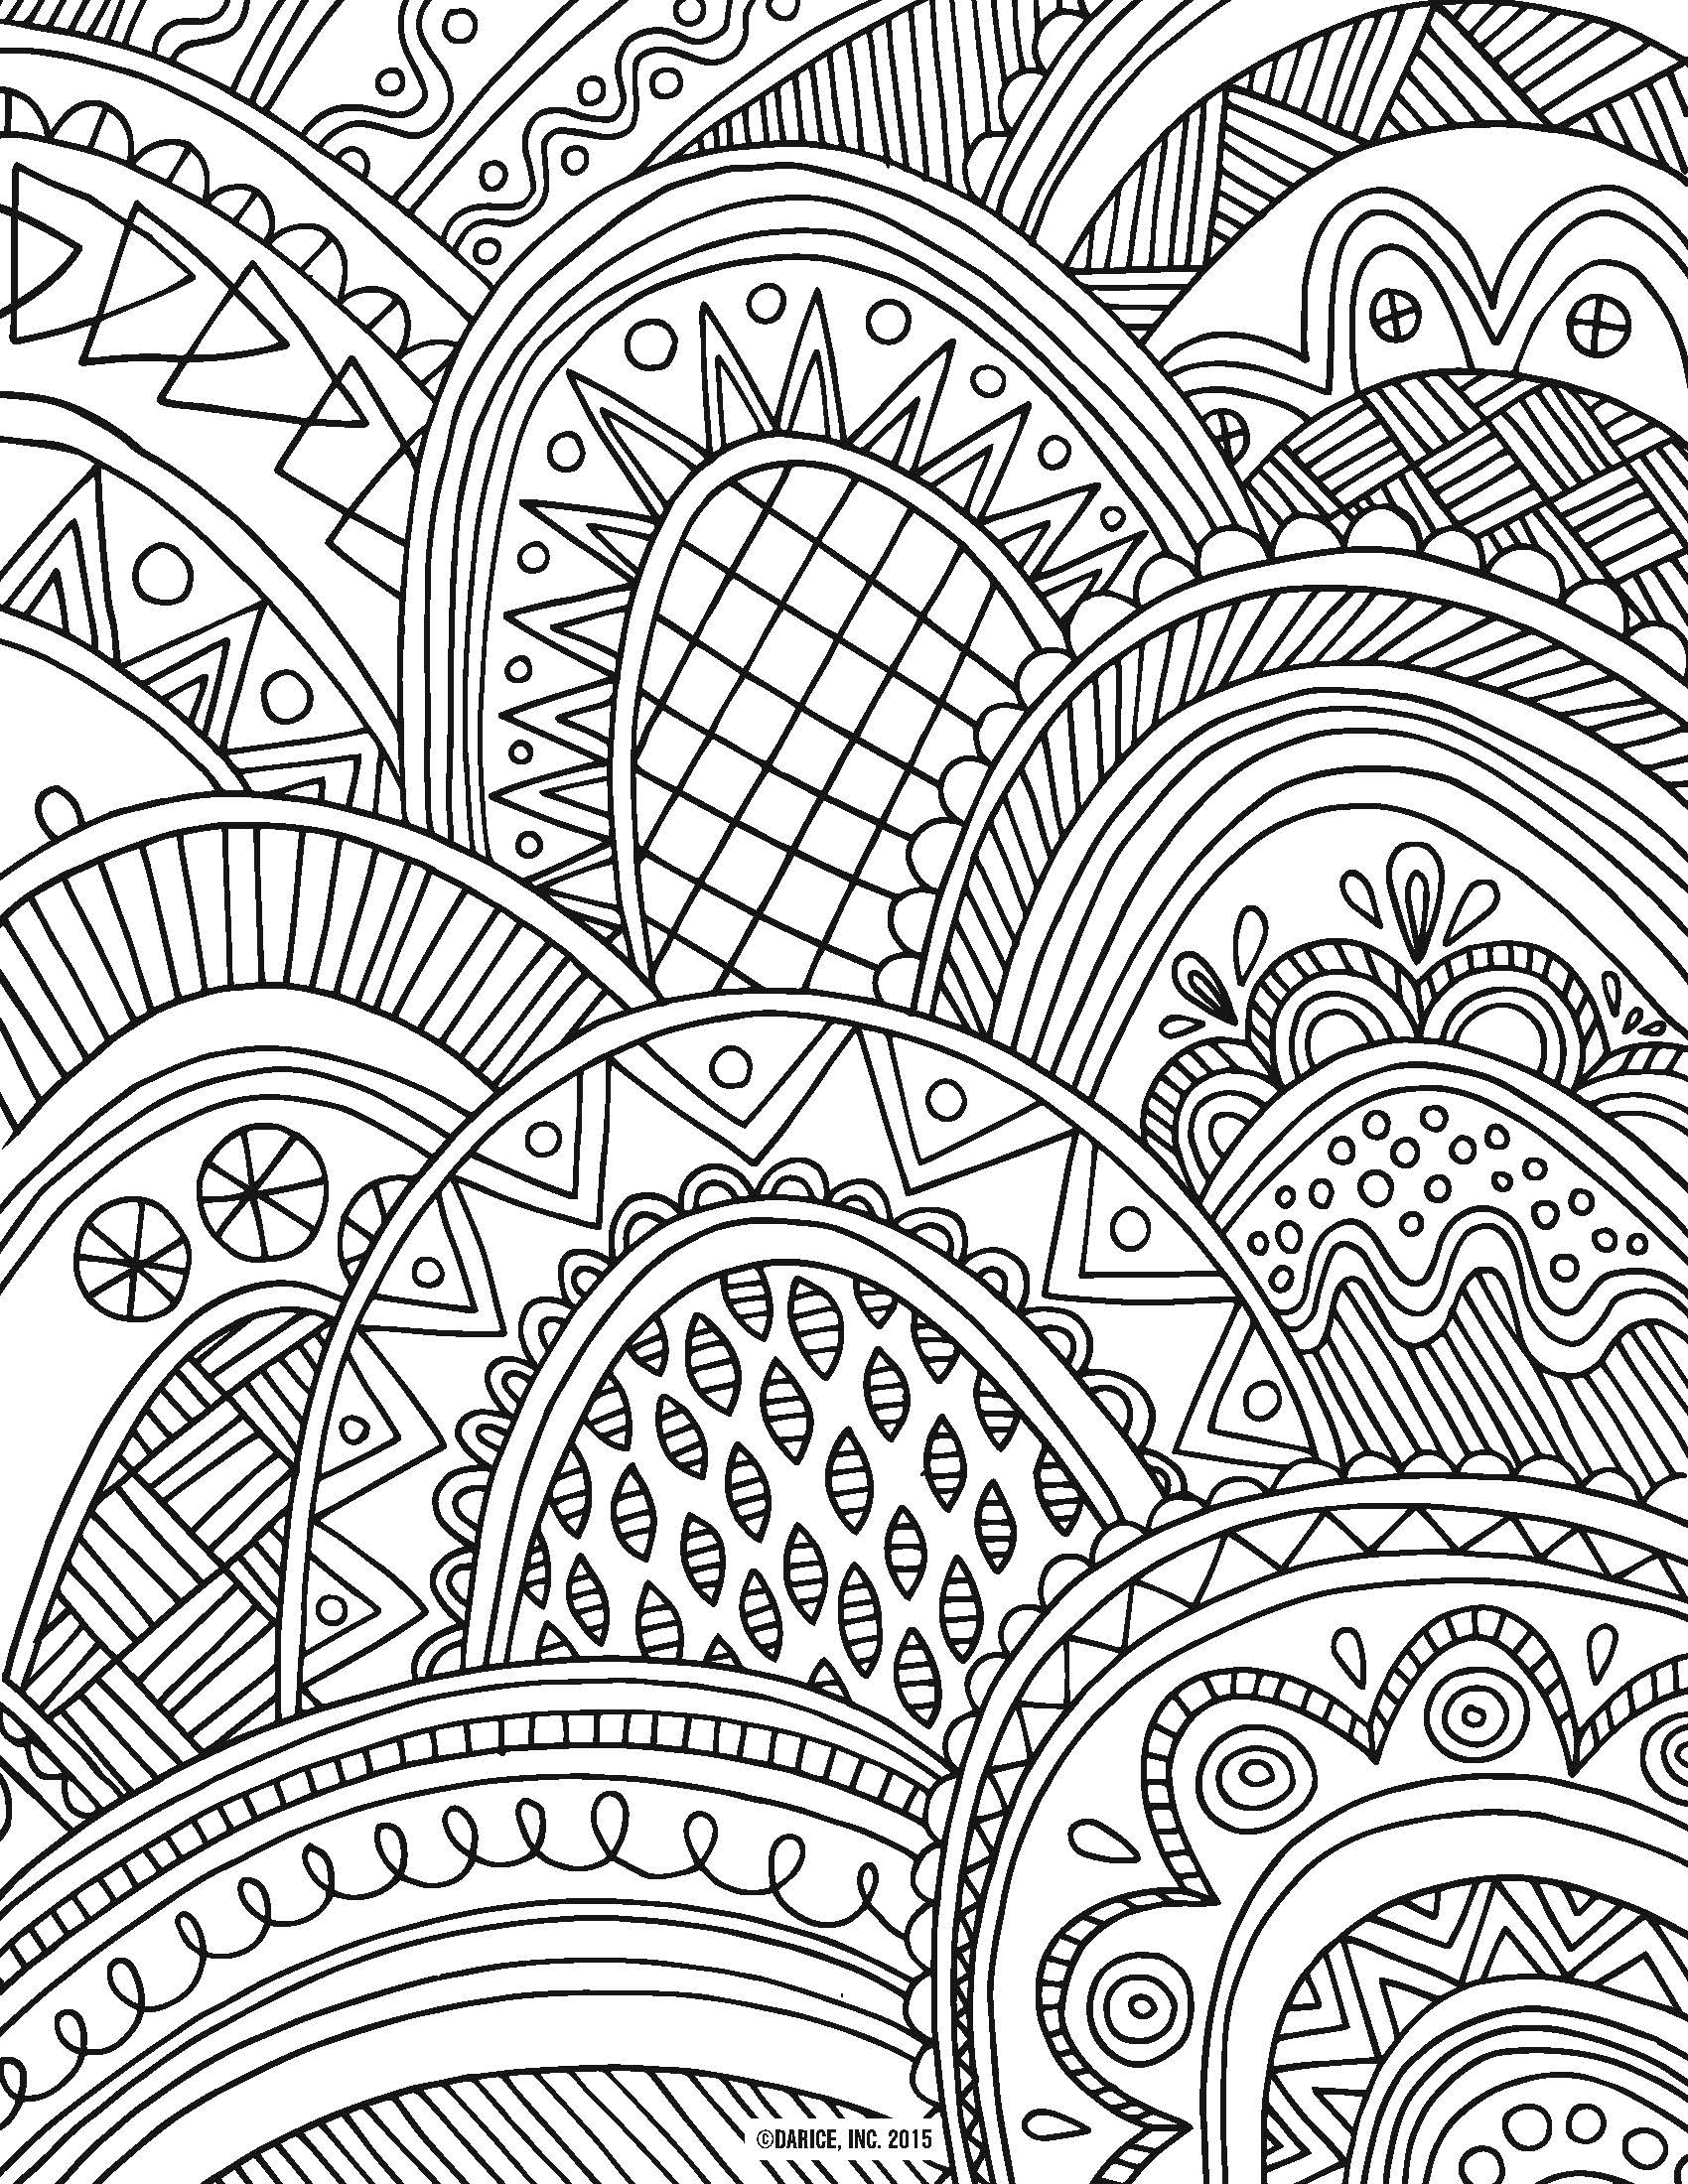 wwwfree coloring pagescom 40 top free coloring pages we need fun wwwfree pagescom coloring